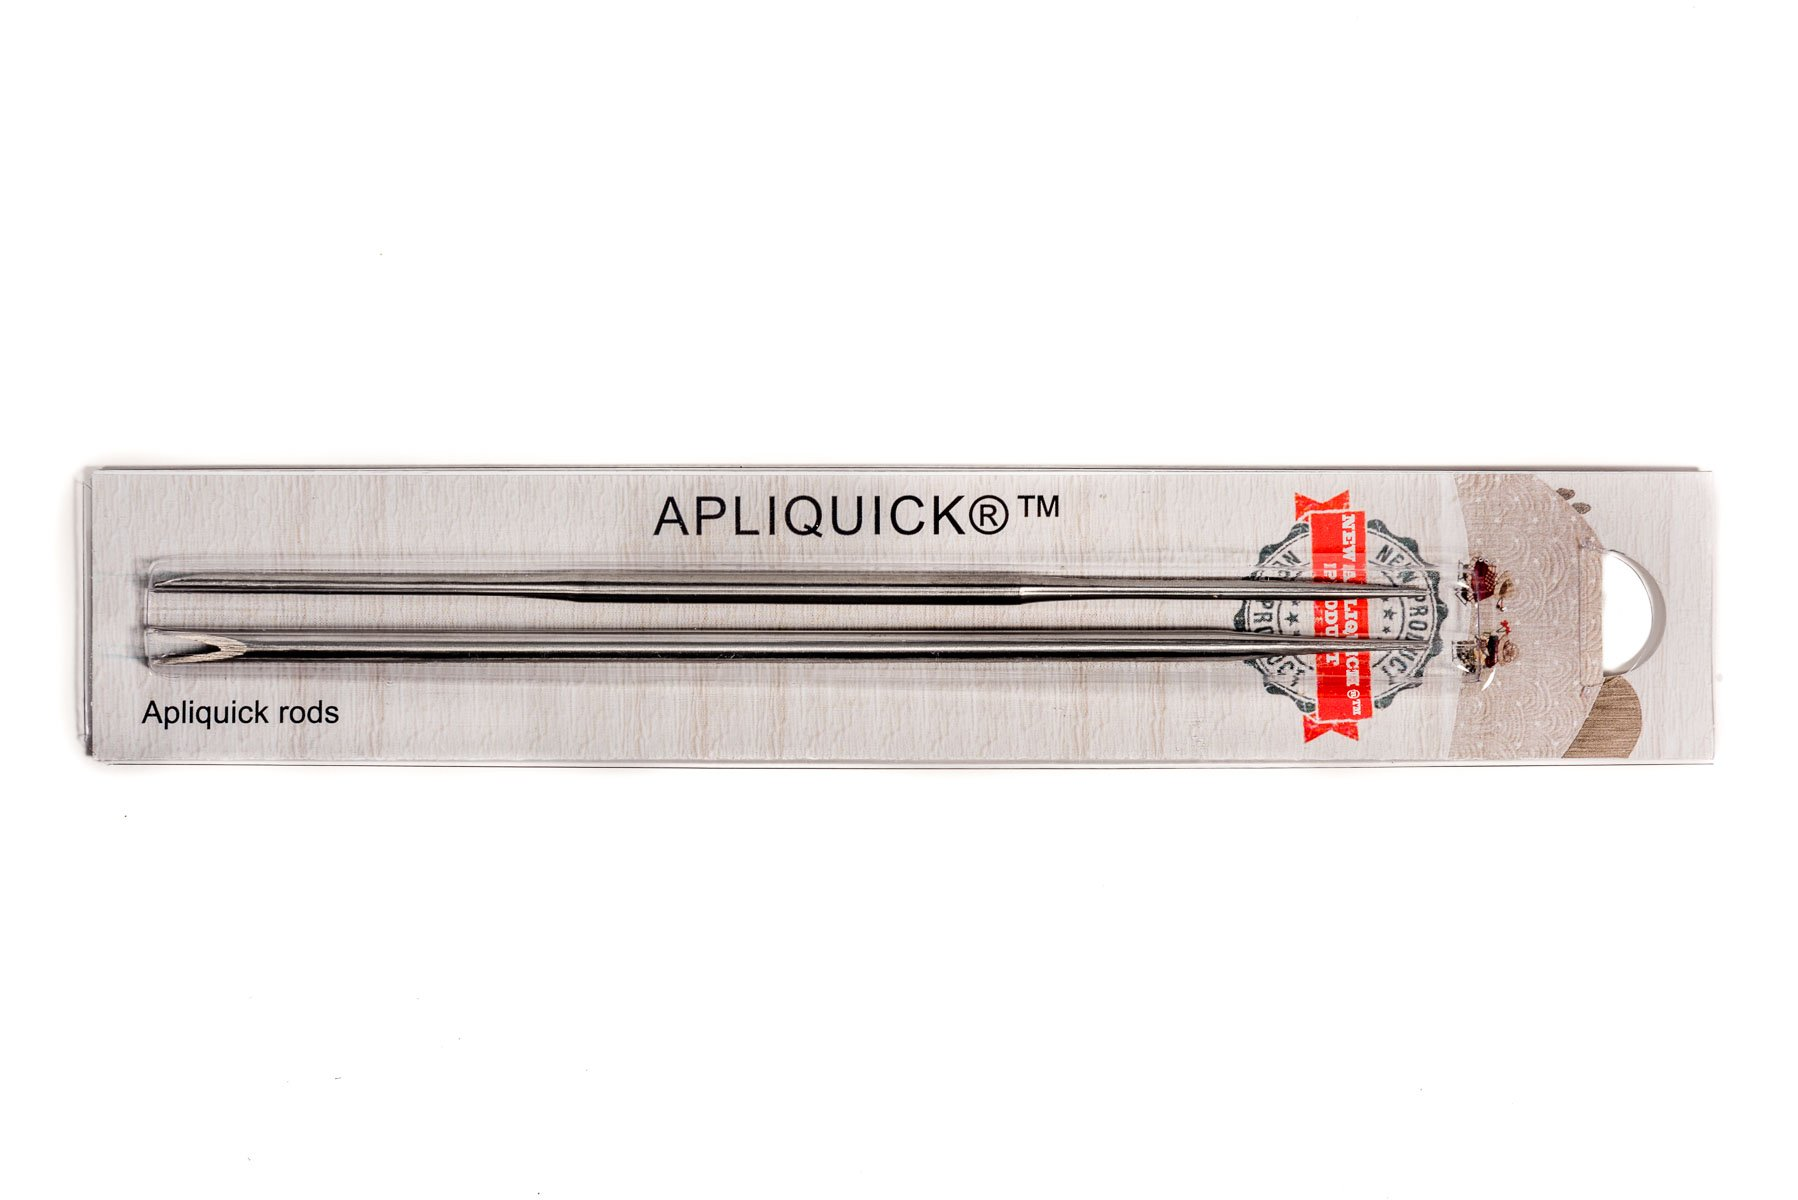 Apliquick Applique Tools (Rods only) Canada